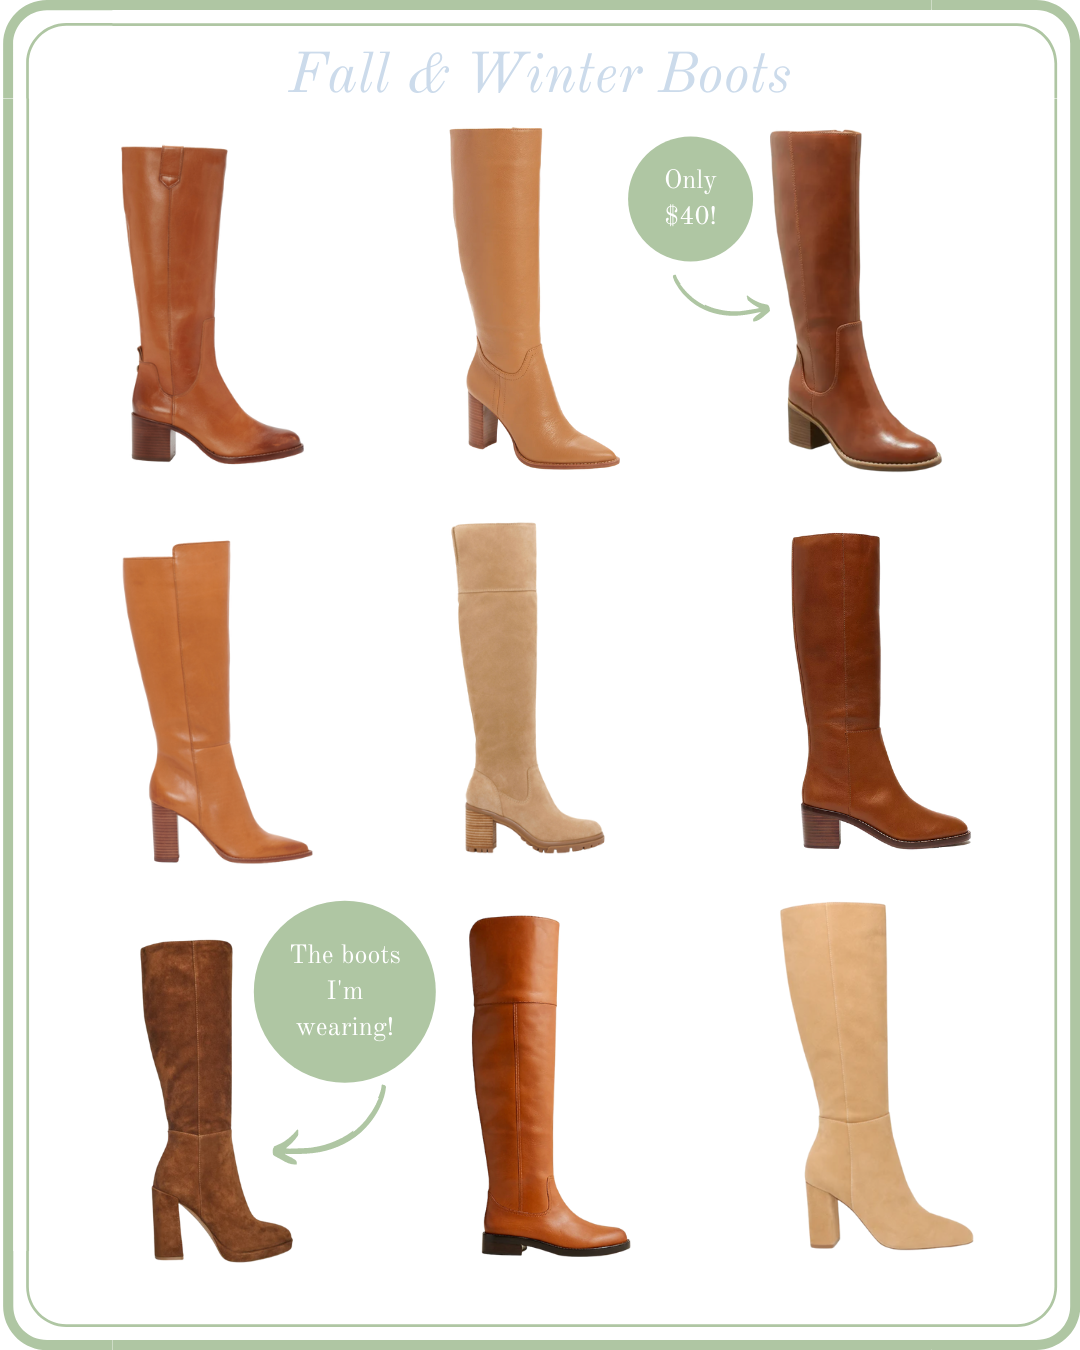 women's fall boots, women's winter boots, fall riding boots, classic riding boots, brown riding boots, leather riding boots, suede riding boots, tall suede boots, tan tall boots, tan suede boots, tall boots with a heel, over-the-knee boots